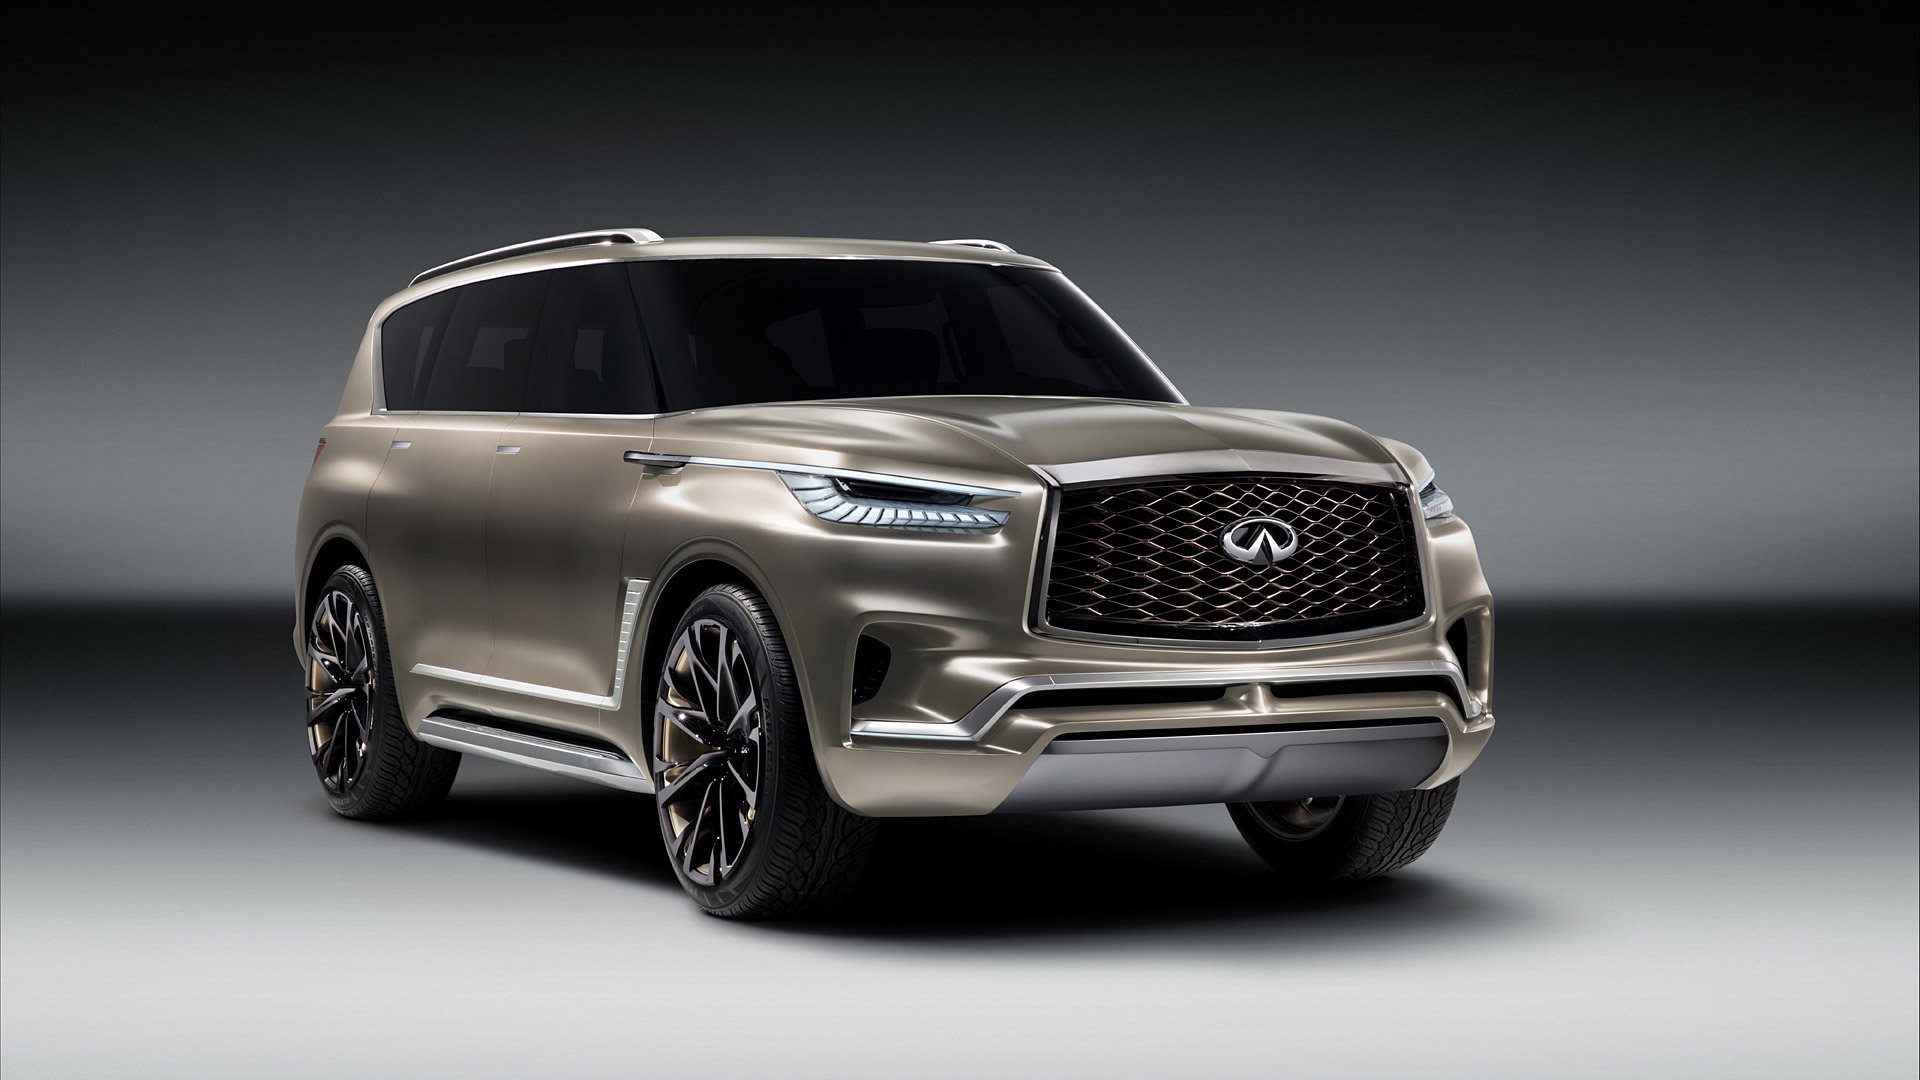 1920x1080 - Infiniti QX80 Wallpapers 31